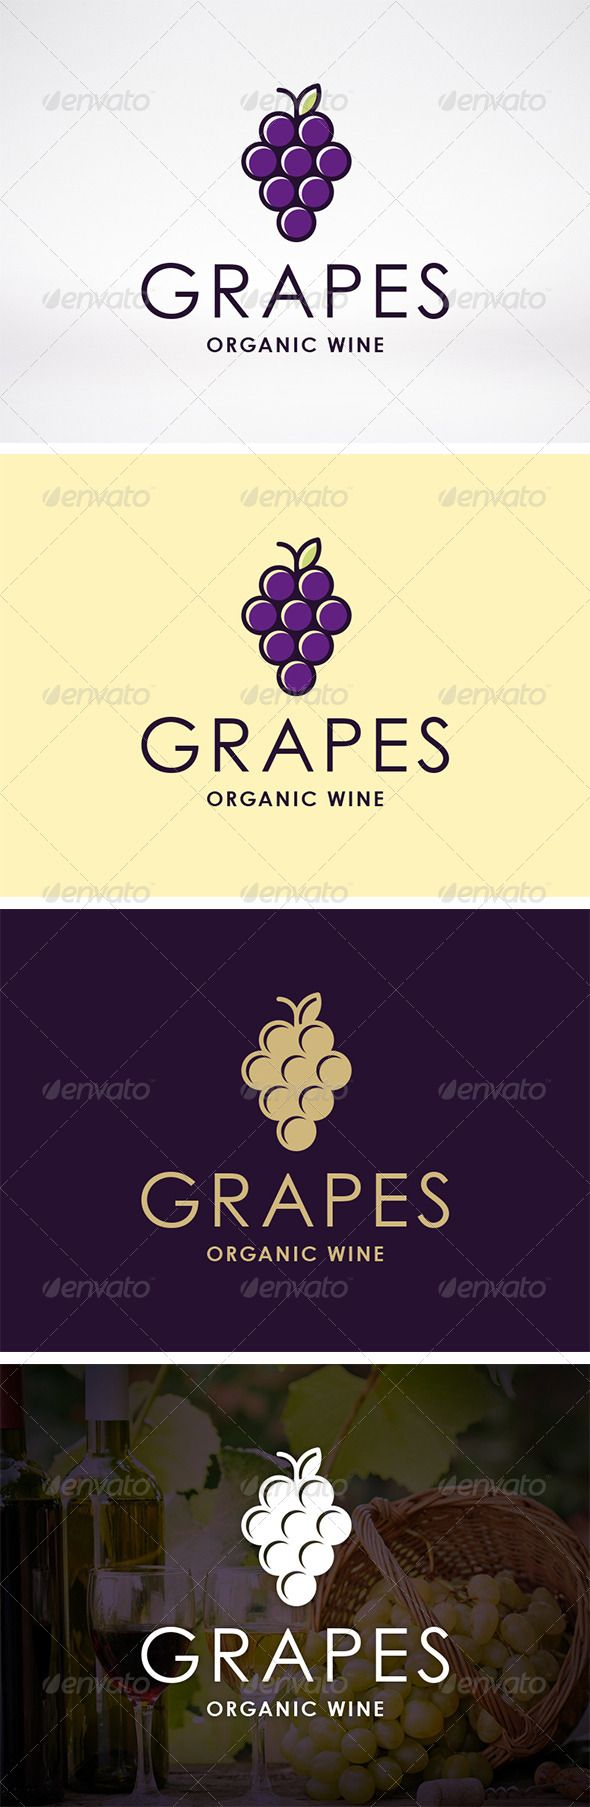 Wine Logo Template  #GraphicRiver         - Three color version: color, greyscale and single color.   - The logo is 100% resizable.   - You can change text and colors very easy using the named and organized layers that includes the file.   - The typography used is Century Gothic a system default font.         Created: 22November13 GraphicsFilesIncluded: VectorEPS